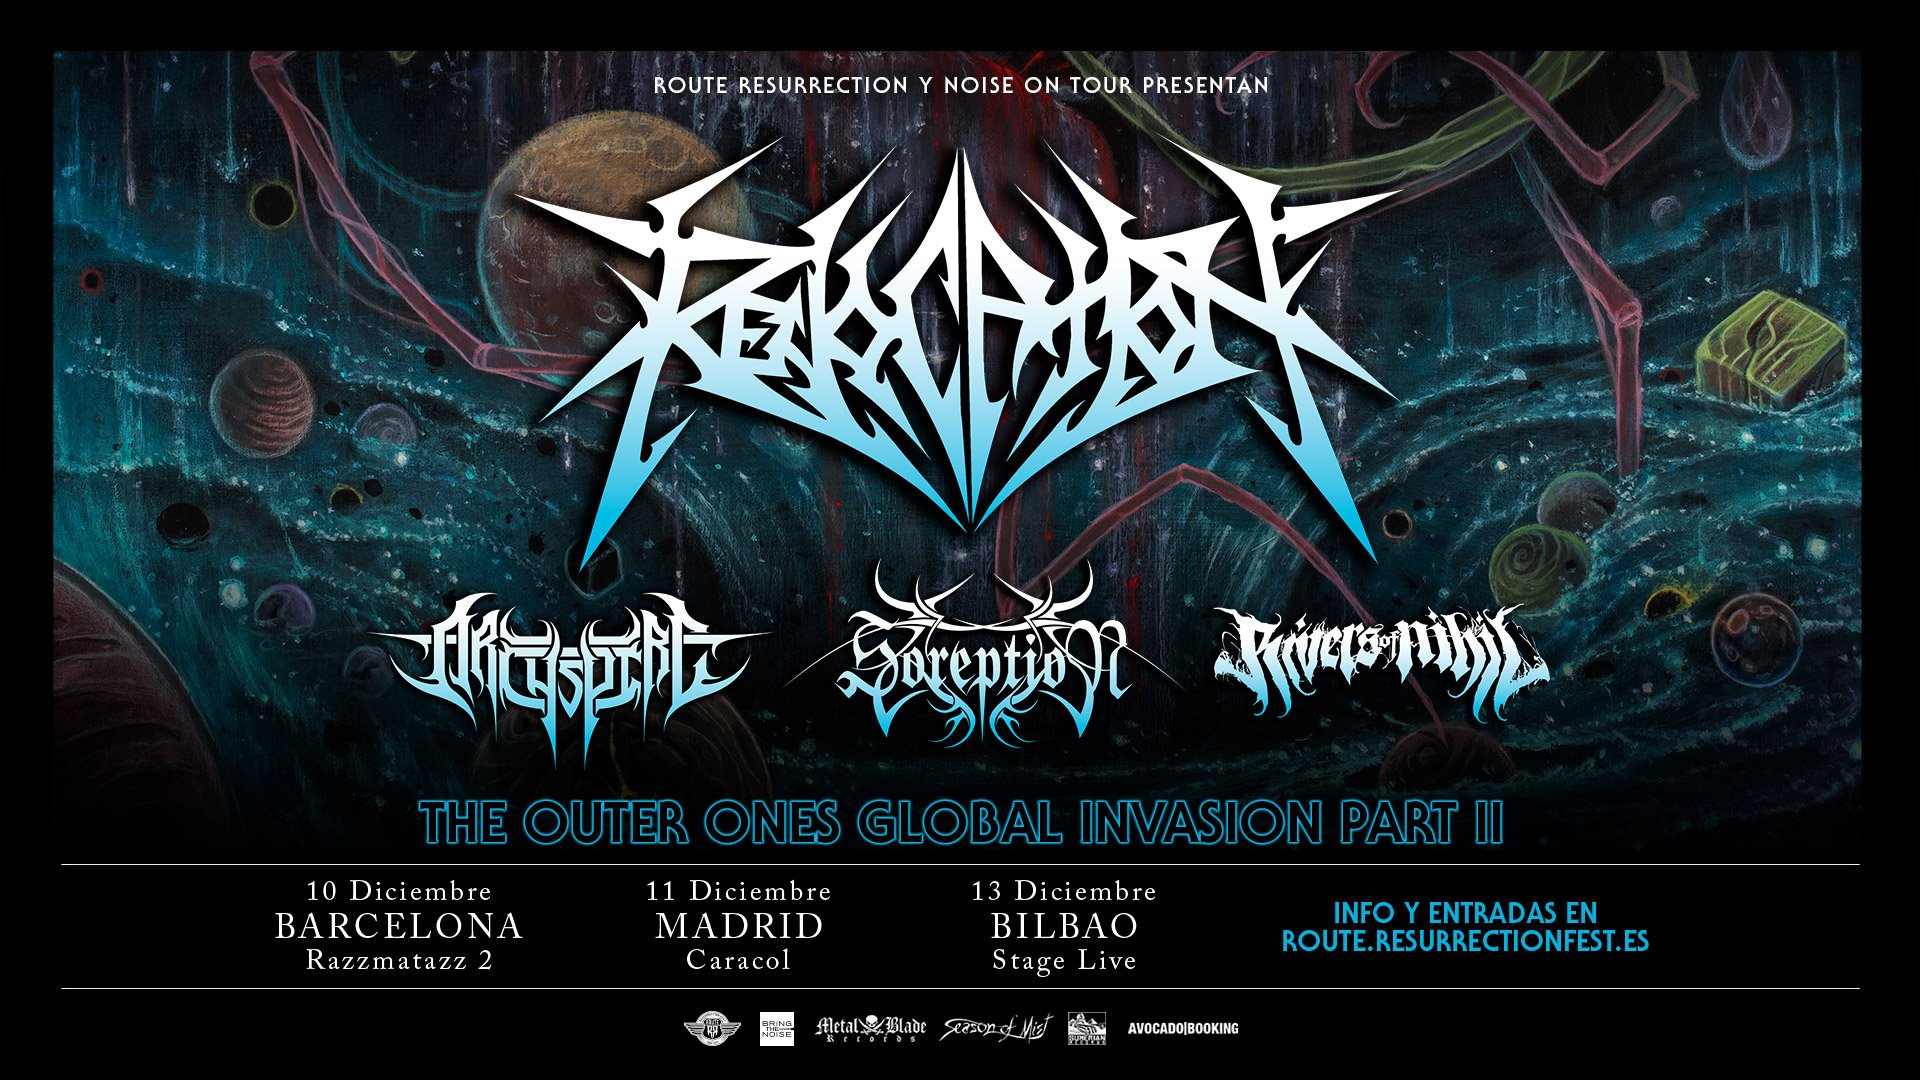 Route Resurrection Fest 2018 - Revocation - Event